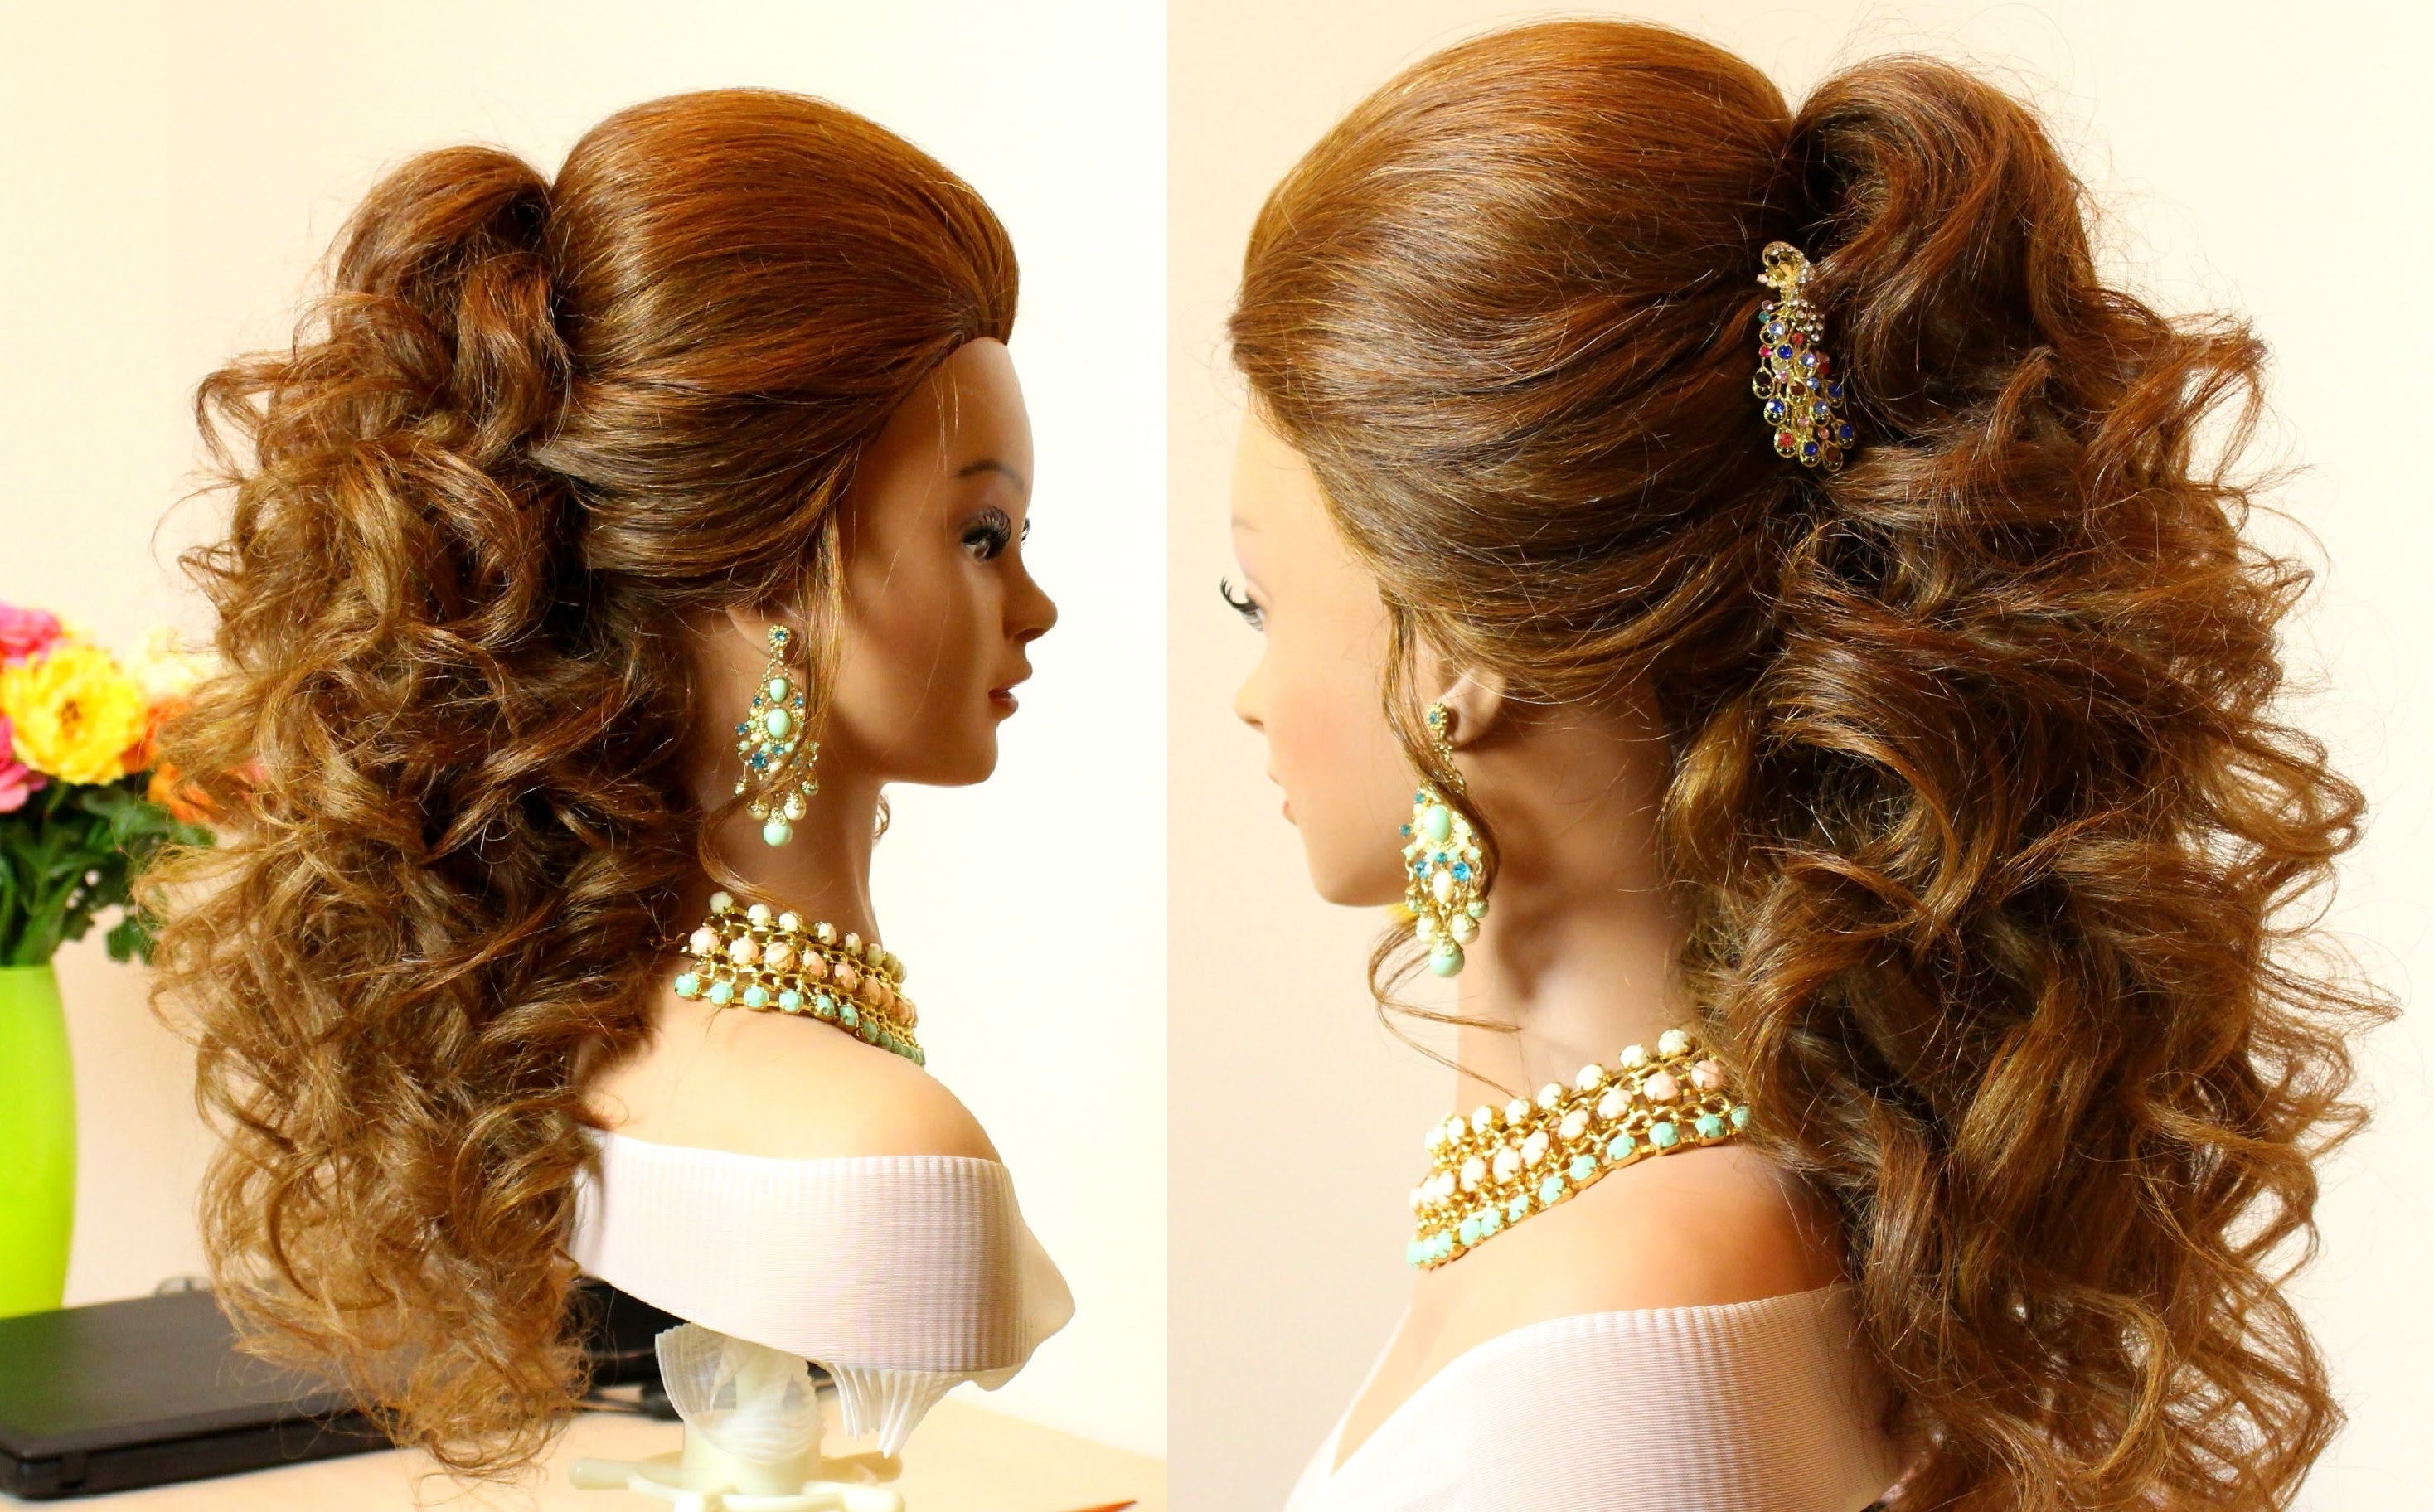 Justswimfl In Well Liked Beach Wedding Hairstyles For Long Curly Hair (View 7 of 15)